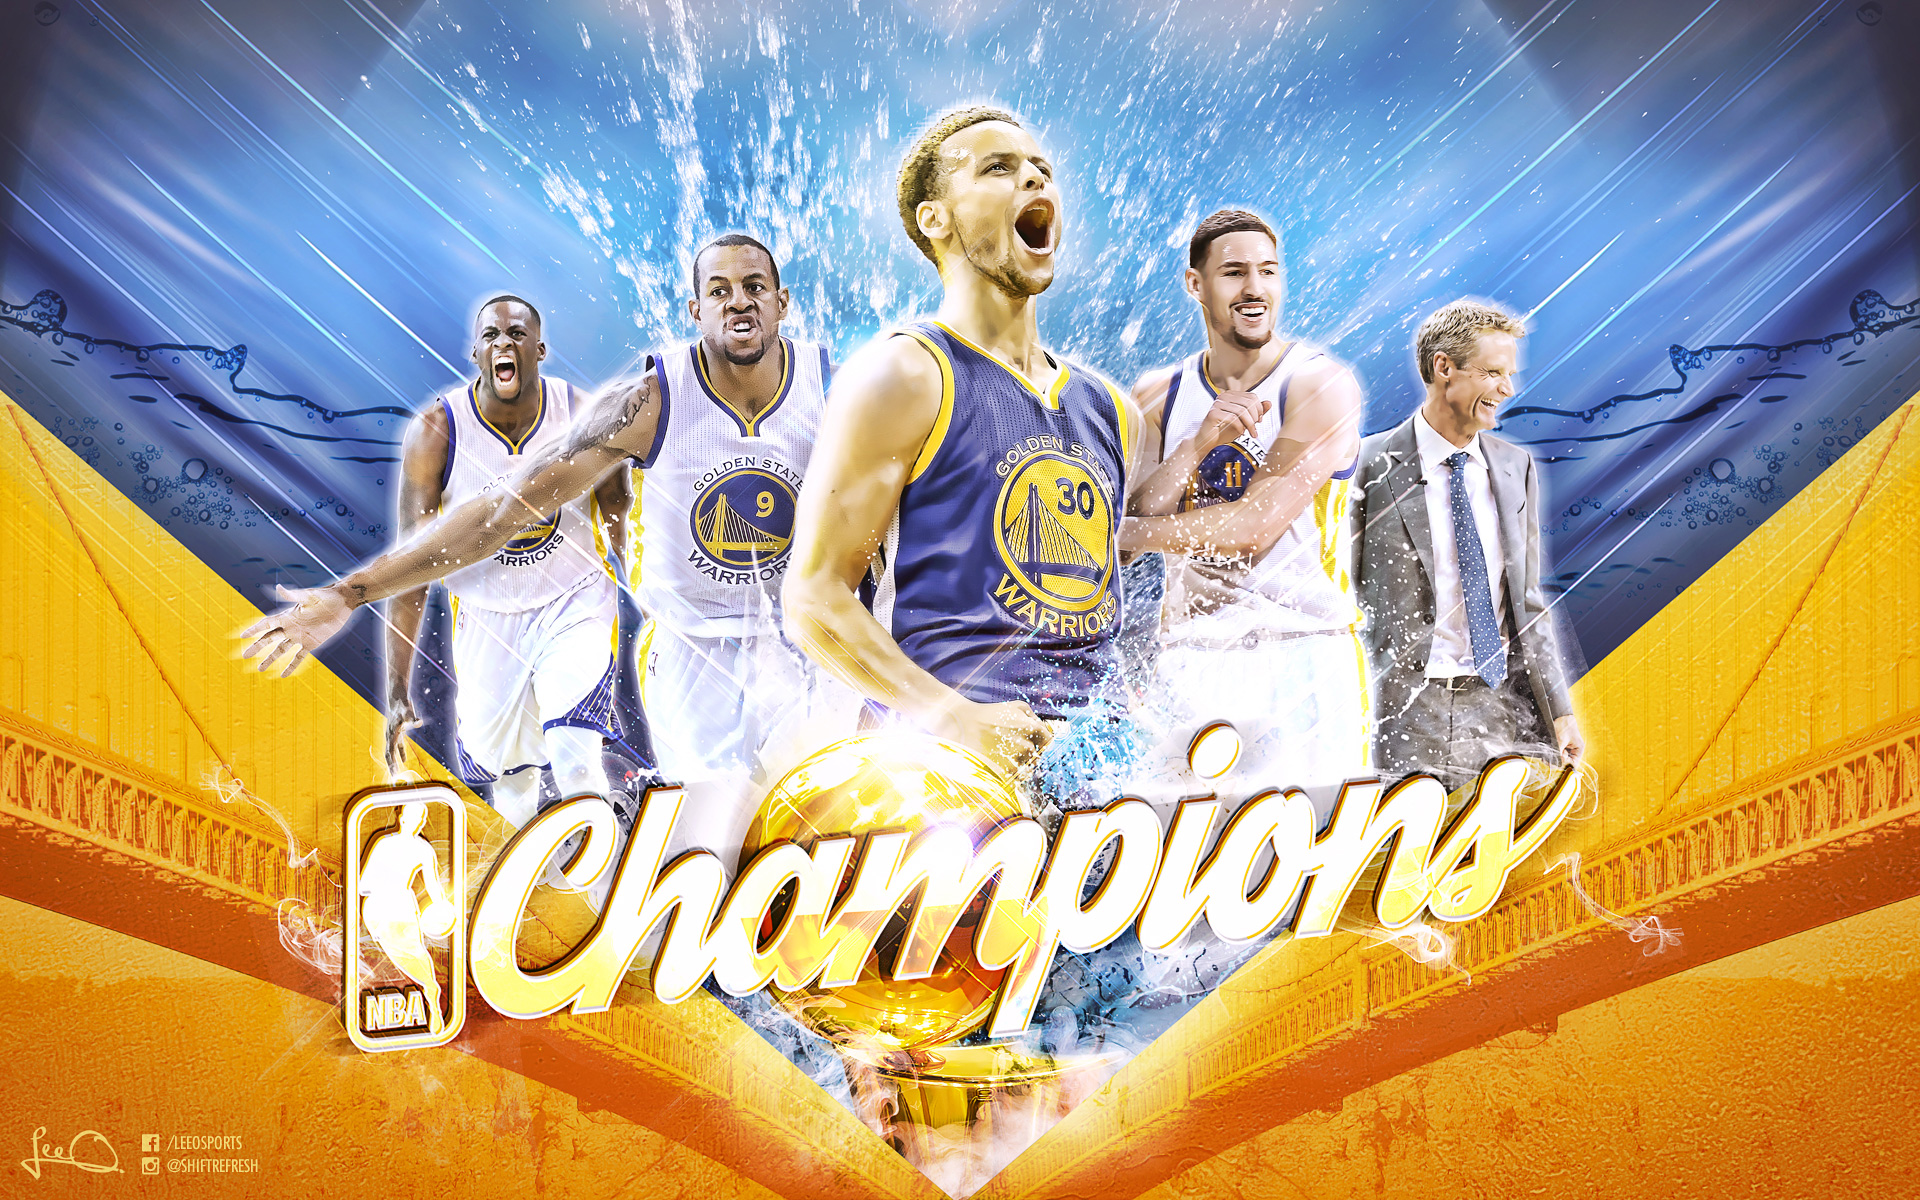 Golden State Warriors 2015 NBA Champions Wallpaper